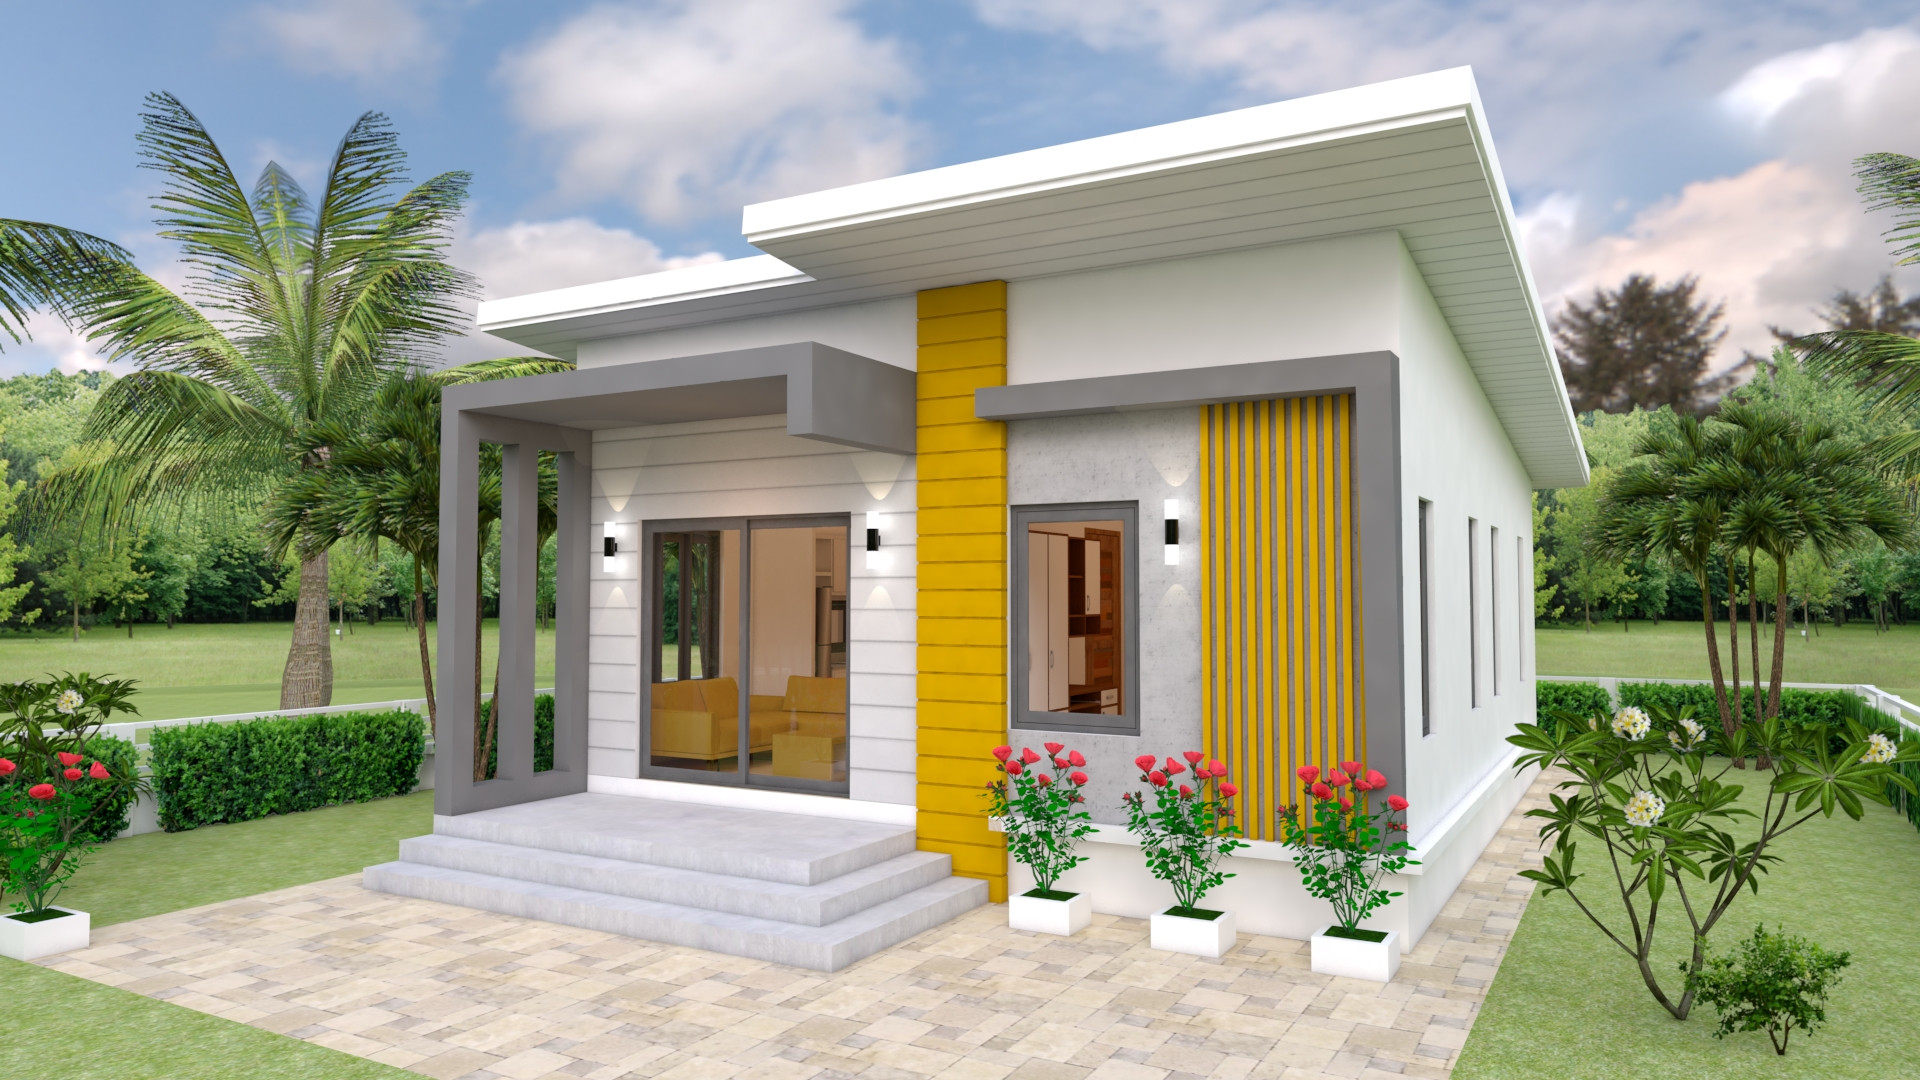 Small 2 Bedroom House Plans  House Design Plans 7x12 with 2 Bedrooms Full Plans